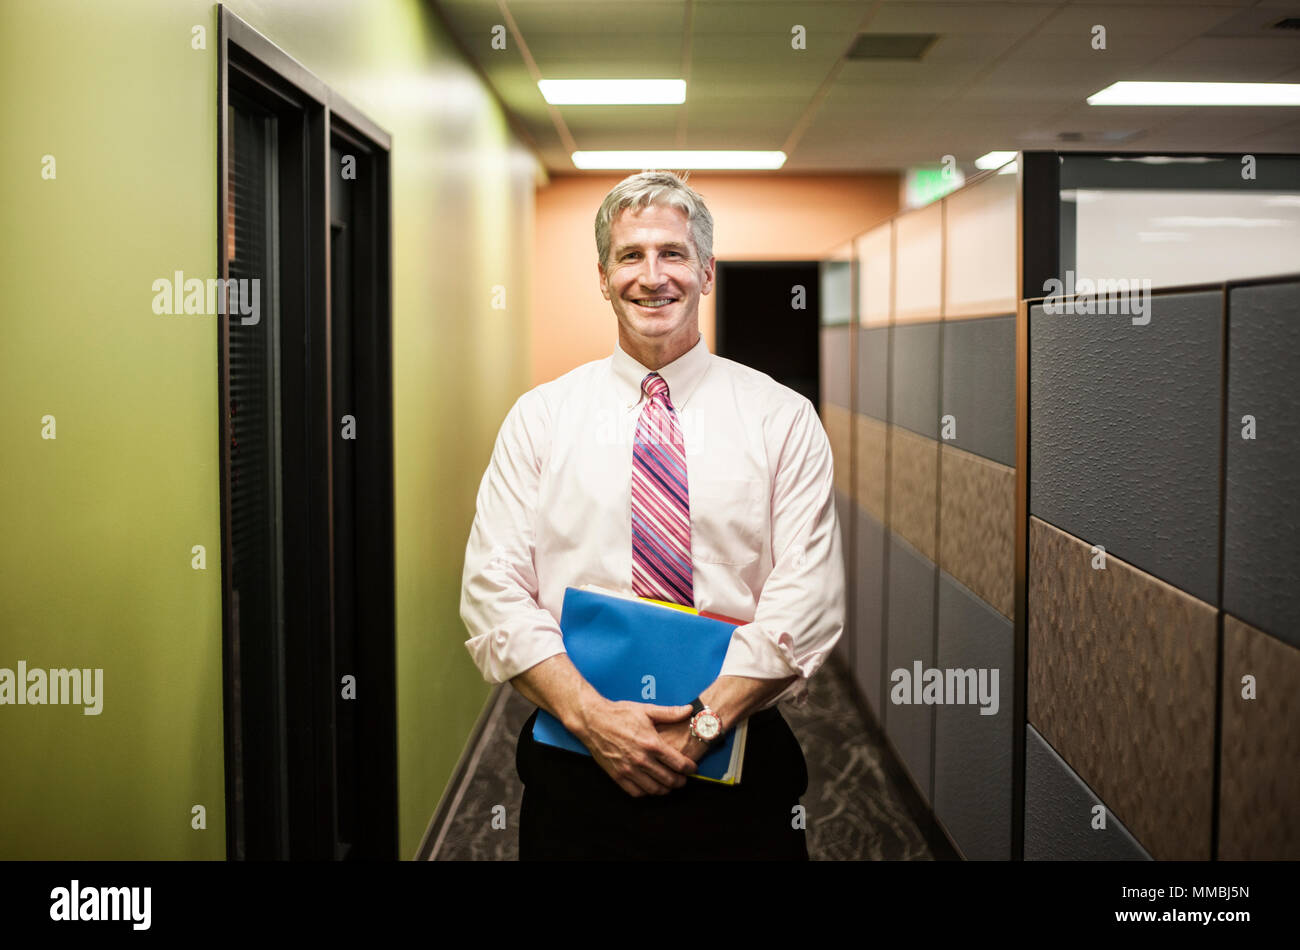 Caucasian man in an office hallway - Stock Image